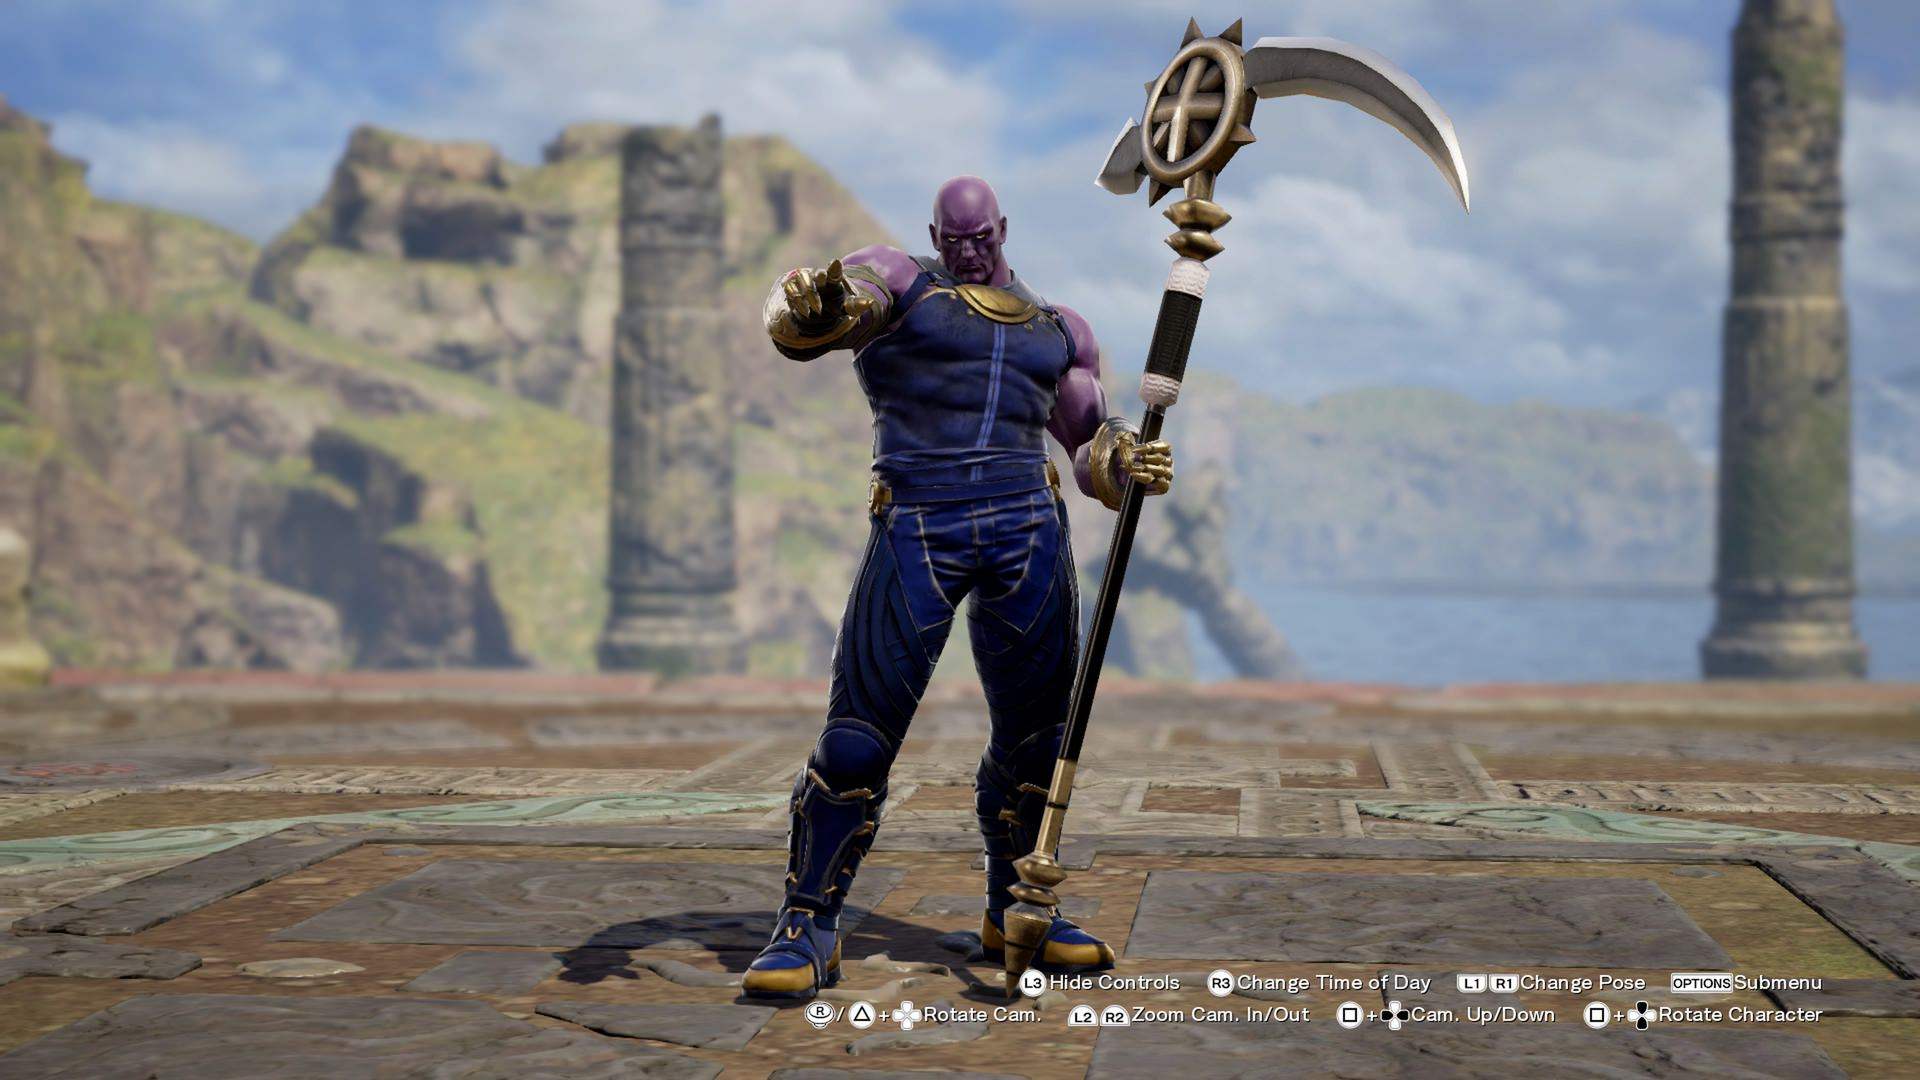 From Thanos to Skeletor, here's some of the best SoulCalibur